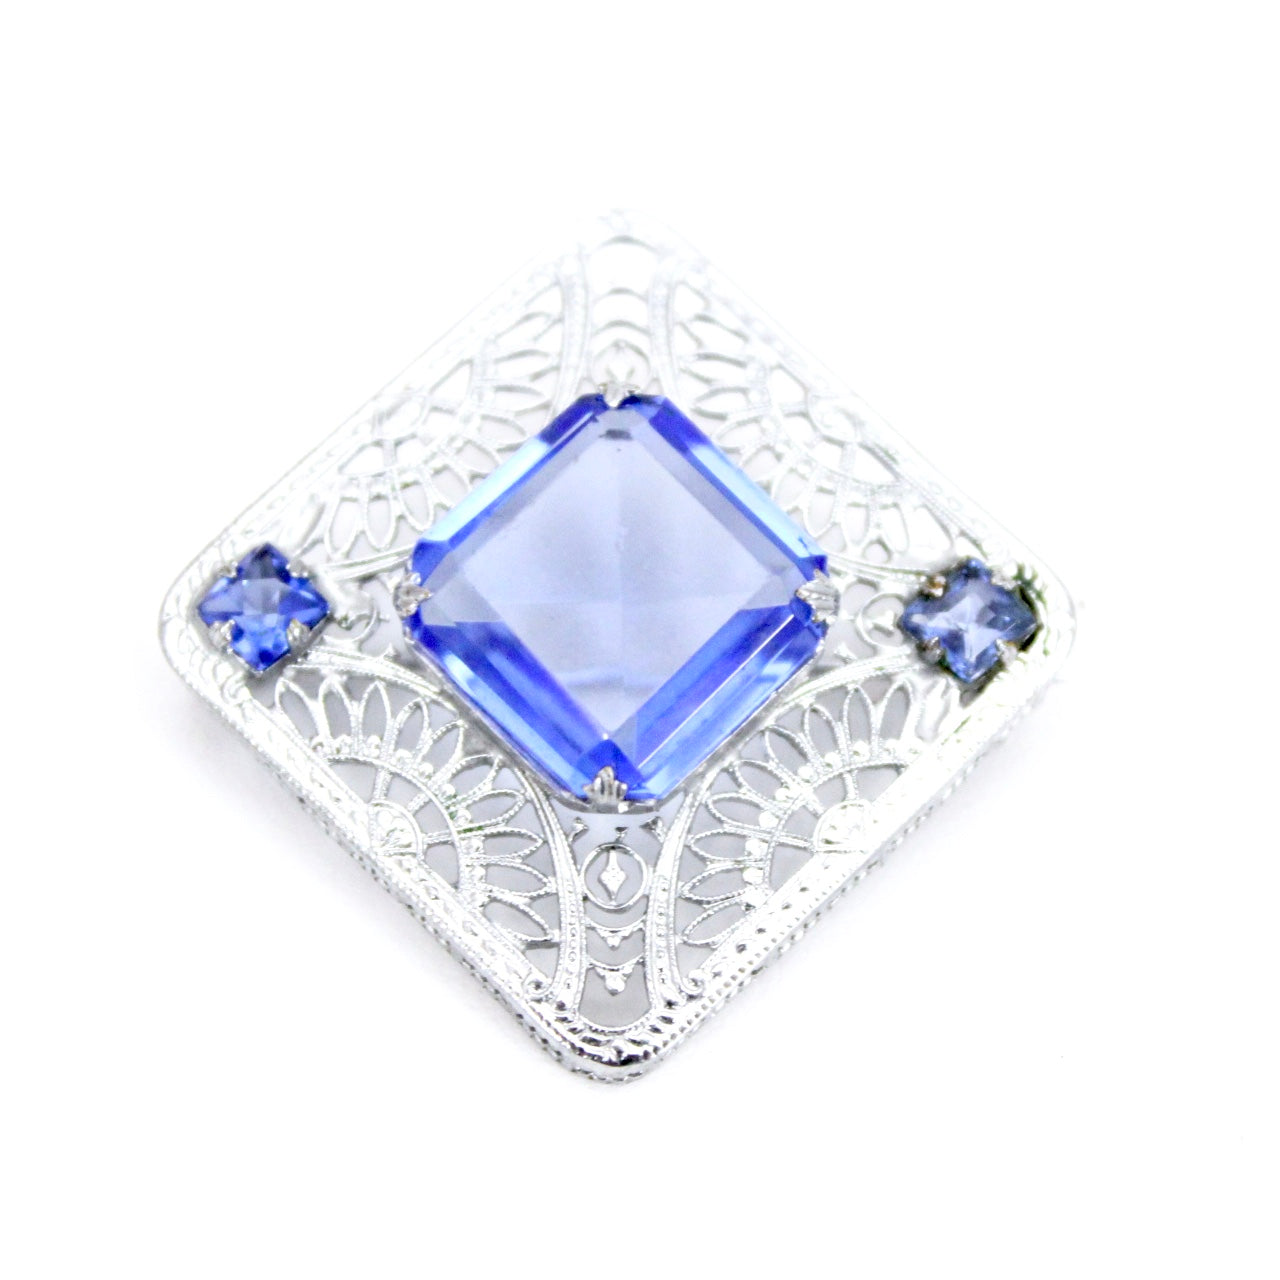 "Antique Art Deco Brooch 1920s Square Pin Blue Glass White Metal Filigree 1 3/8"" Cloche Pin"